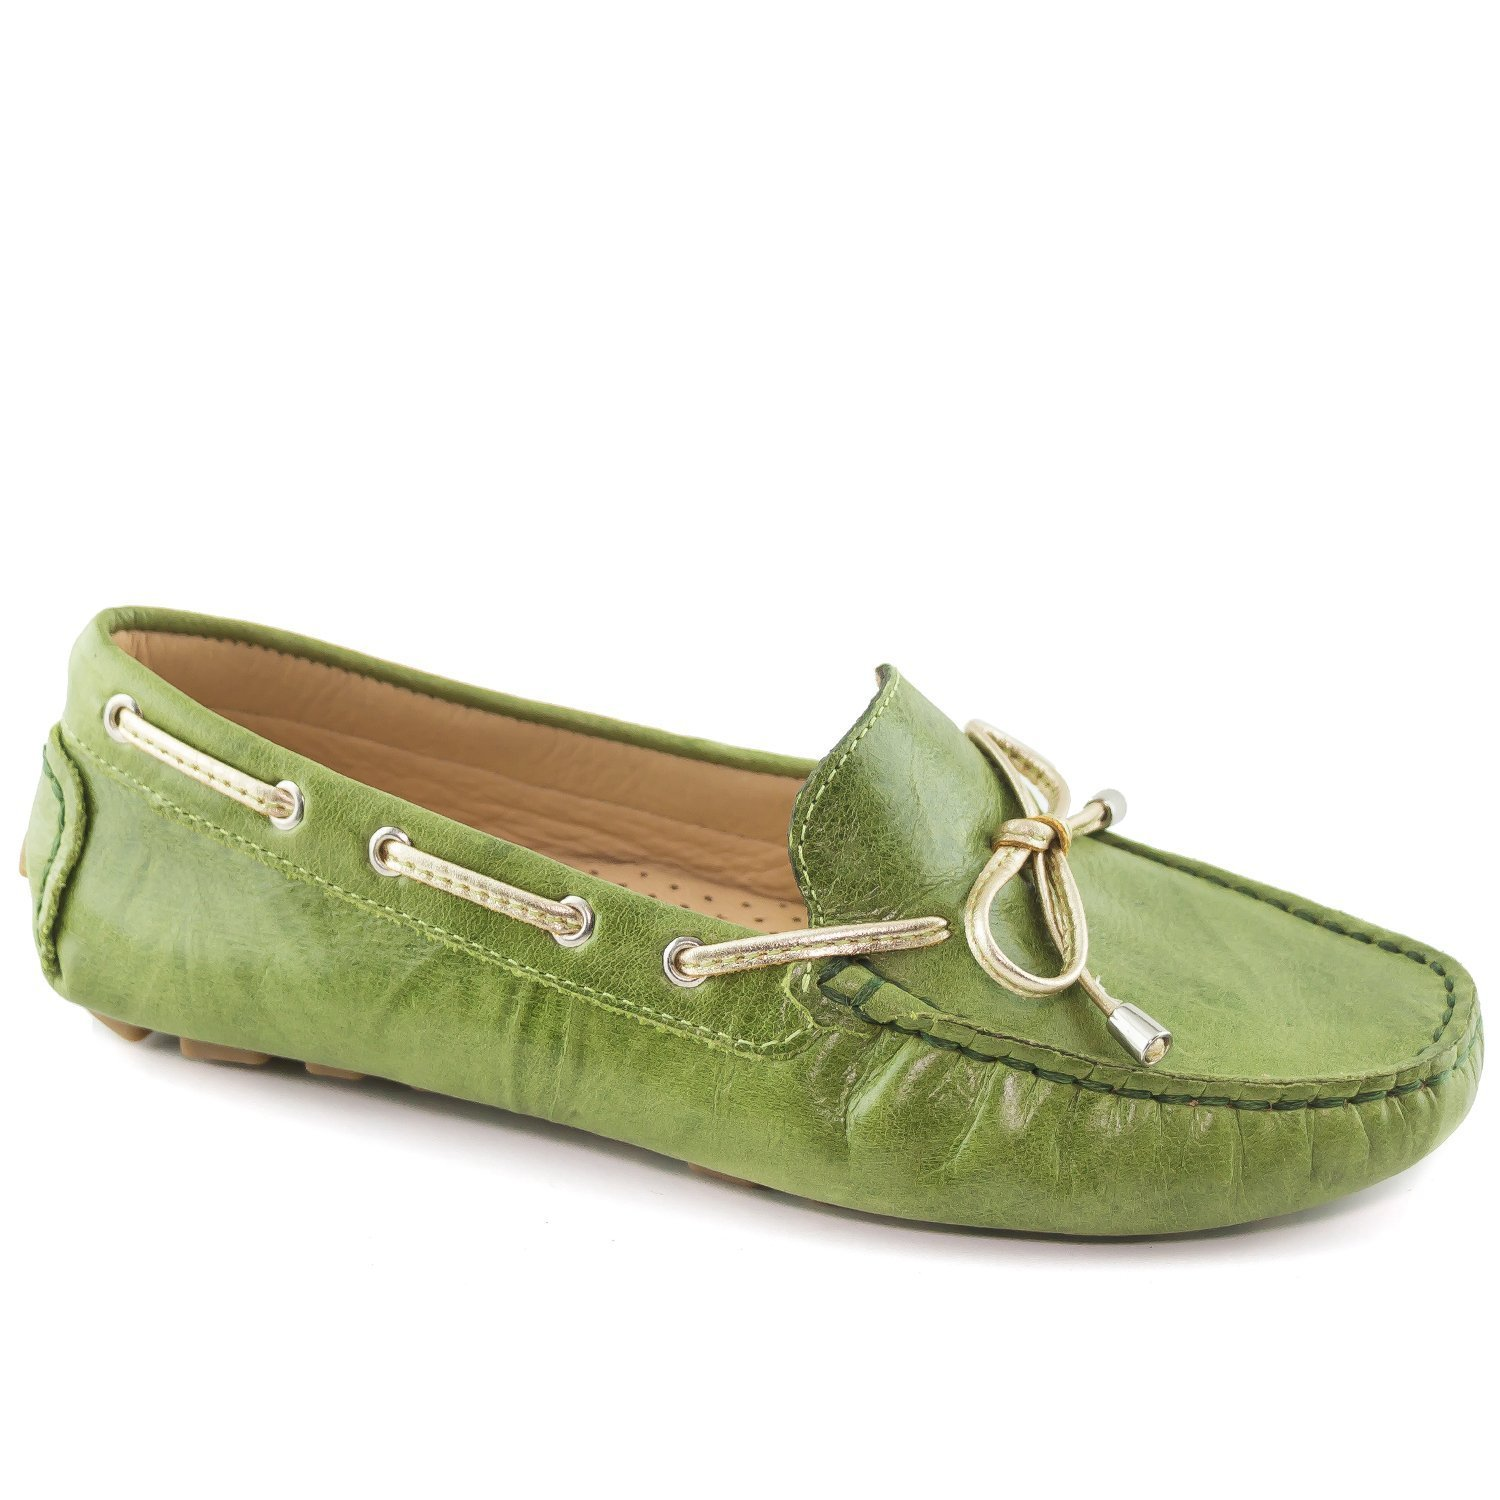 Driver Club USA Women's Genuine Leather Made in Brazil Nantucket Classic Lime Green Crush 10